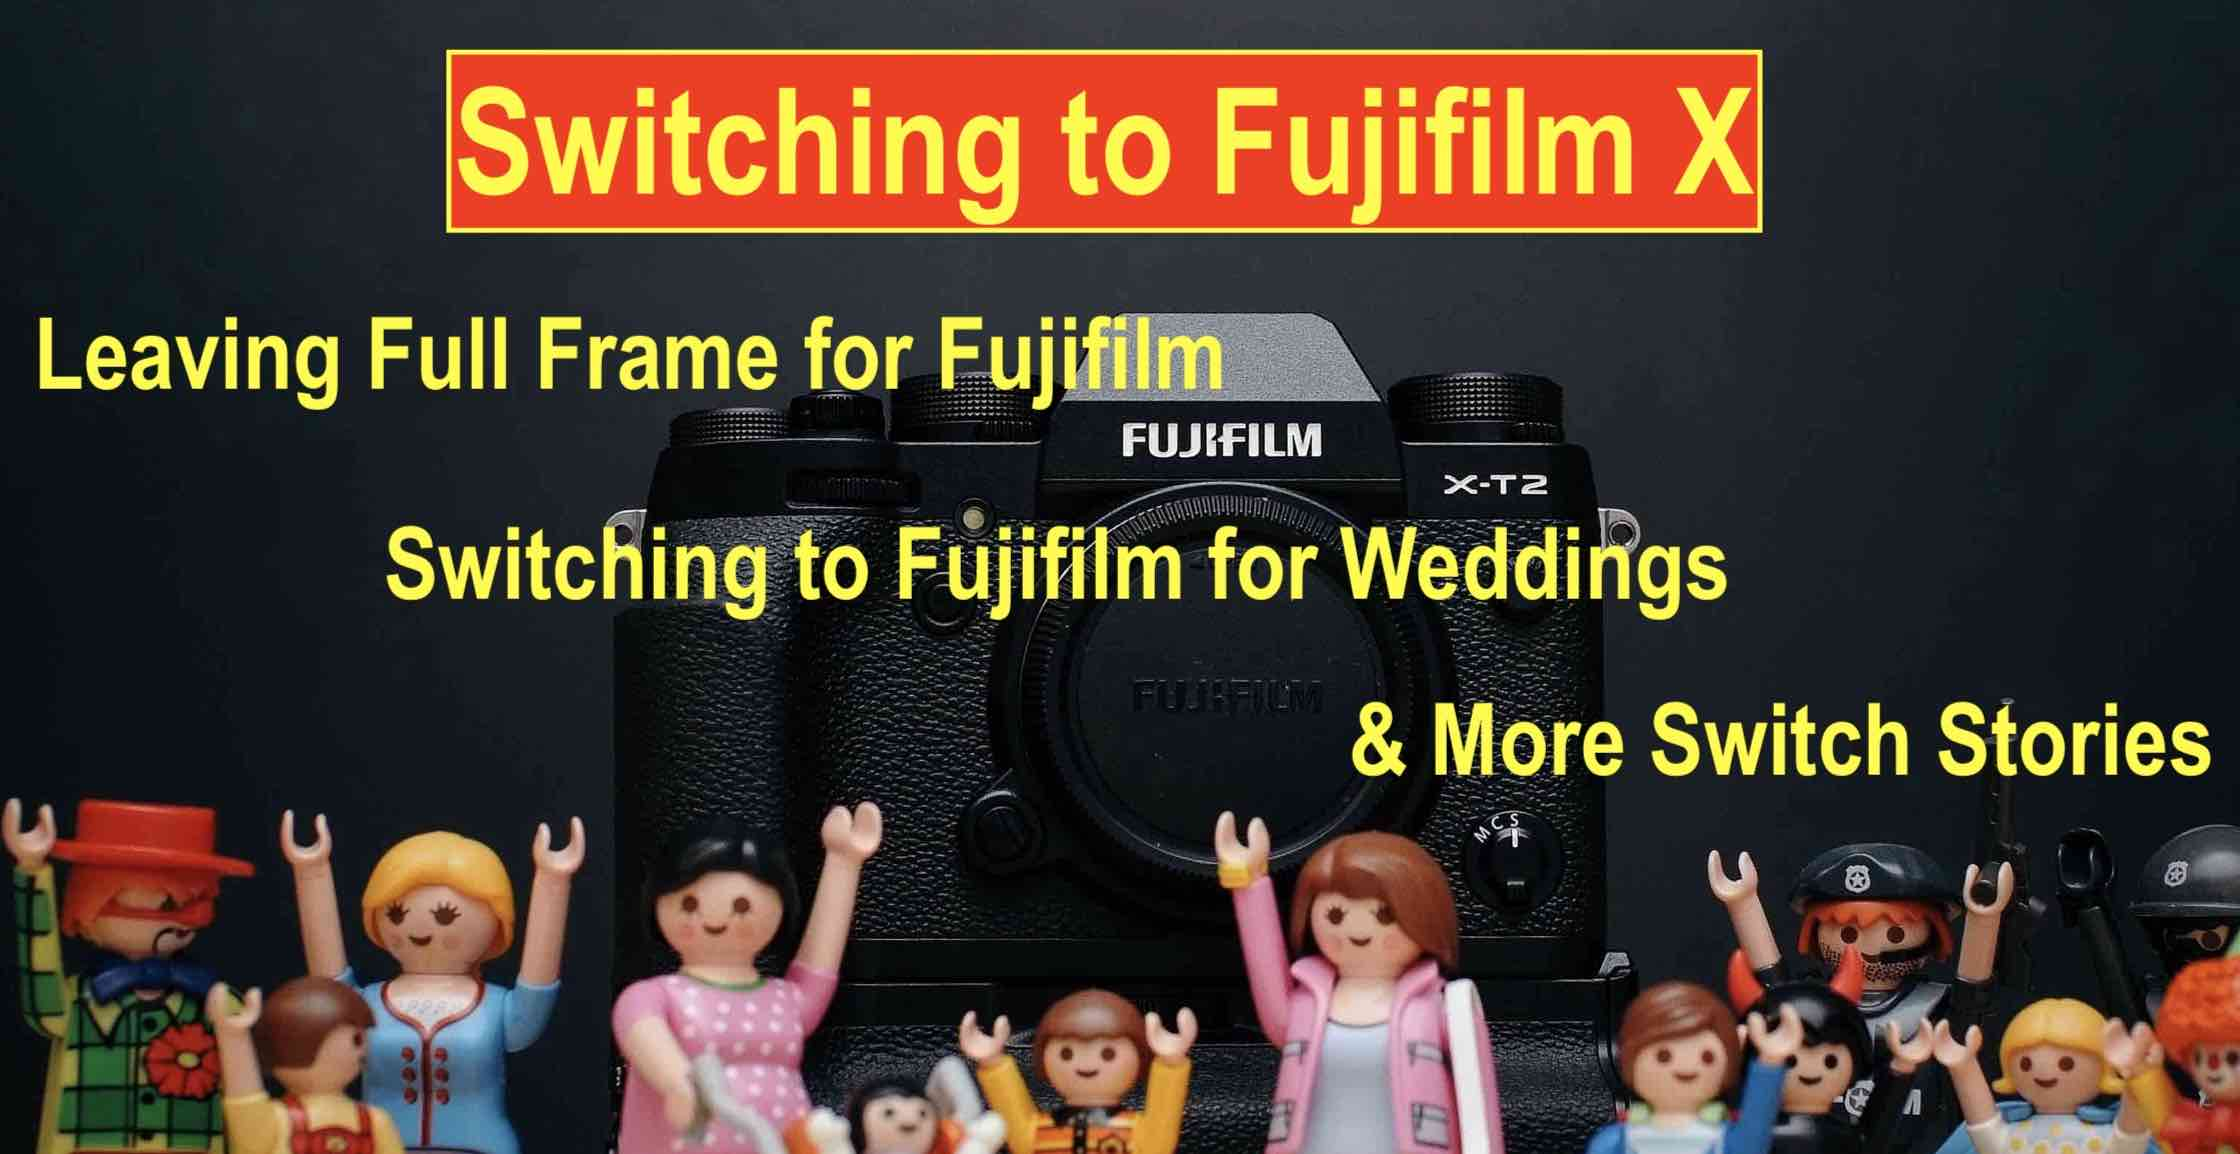 Five Reasons To Switch To Fujifilm For Weddings From Full Frame Dslr To Fuji X Worth It And More Switch Stories Fuji Rumors